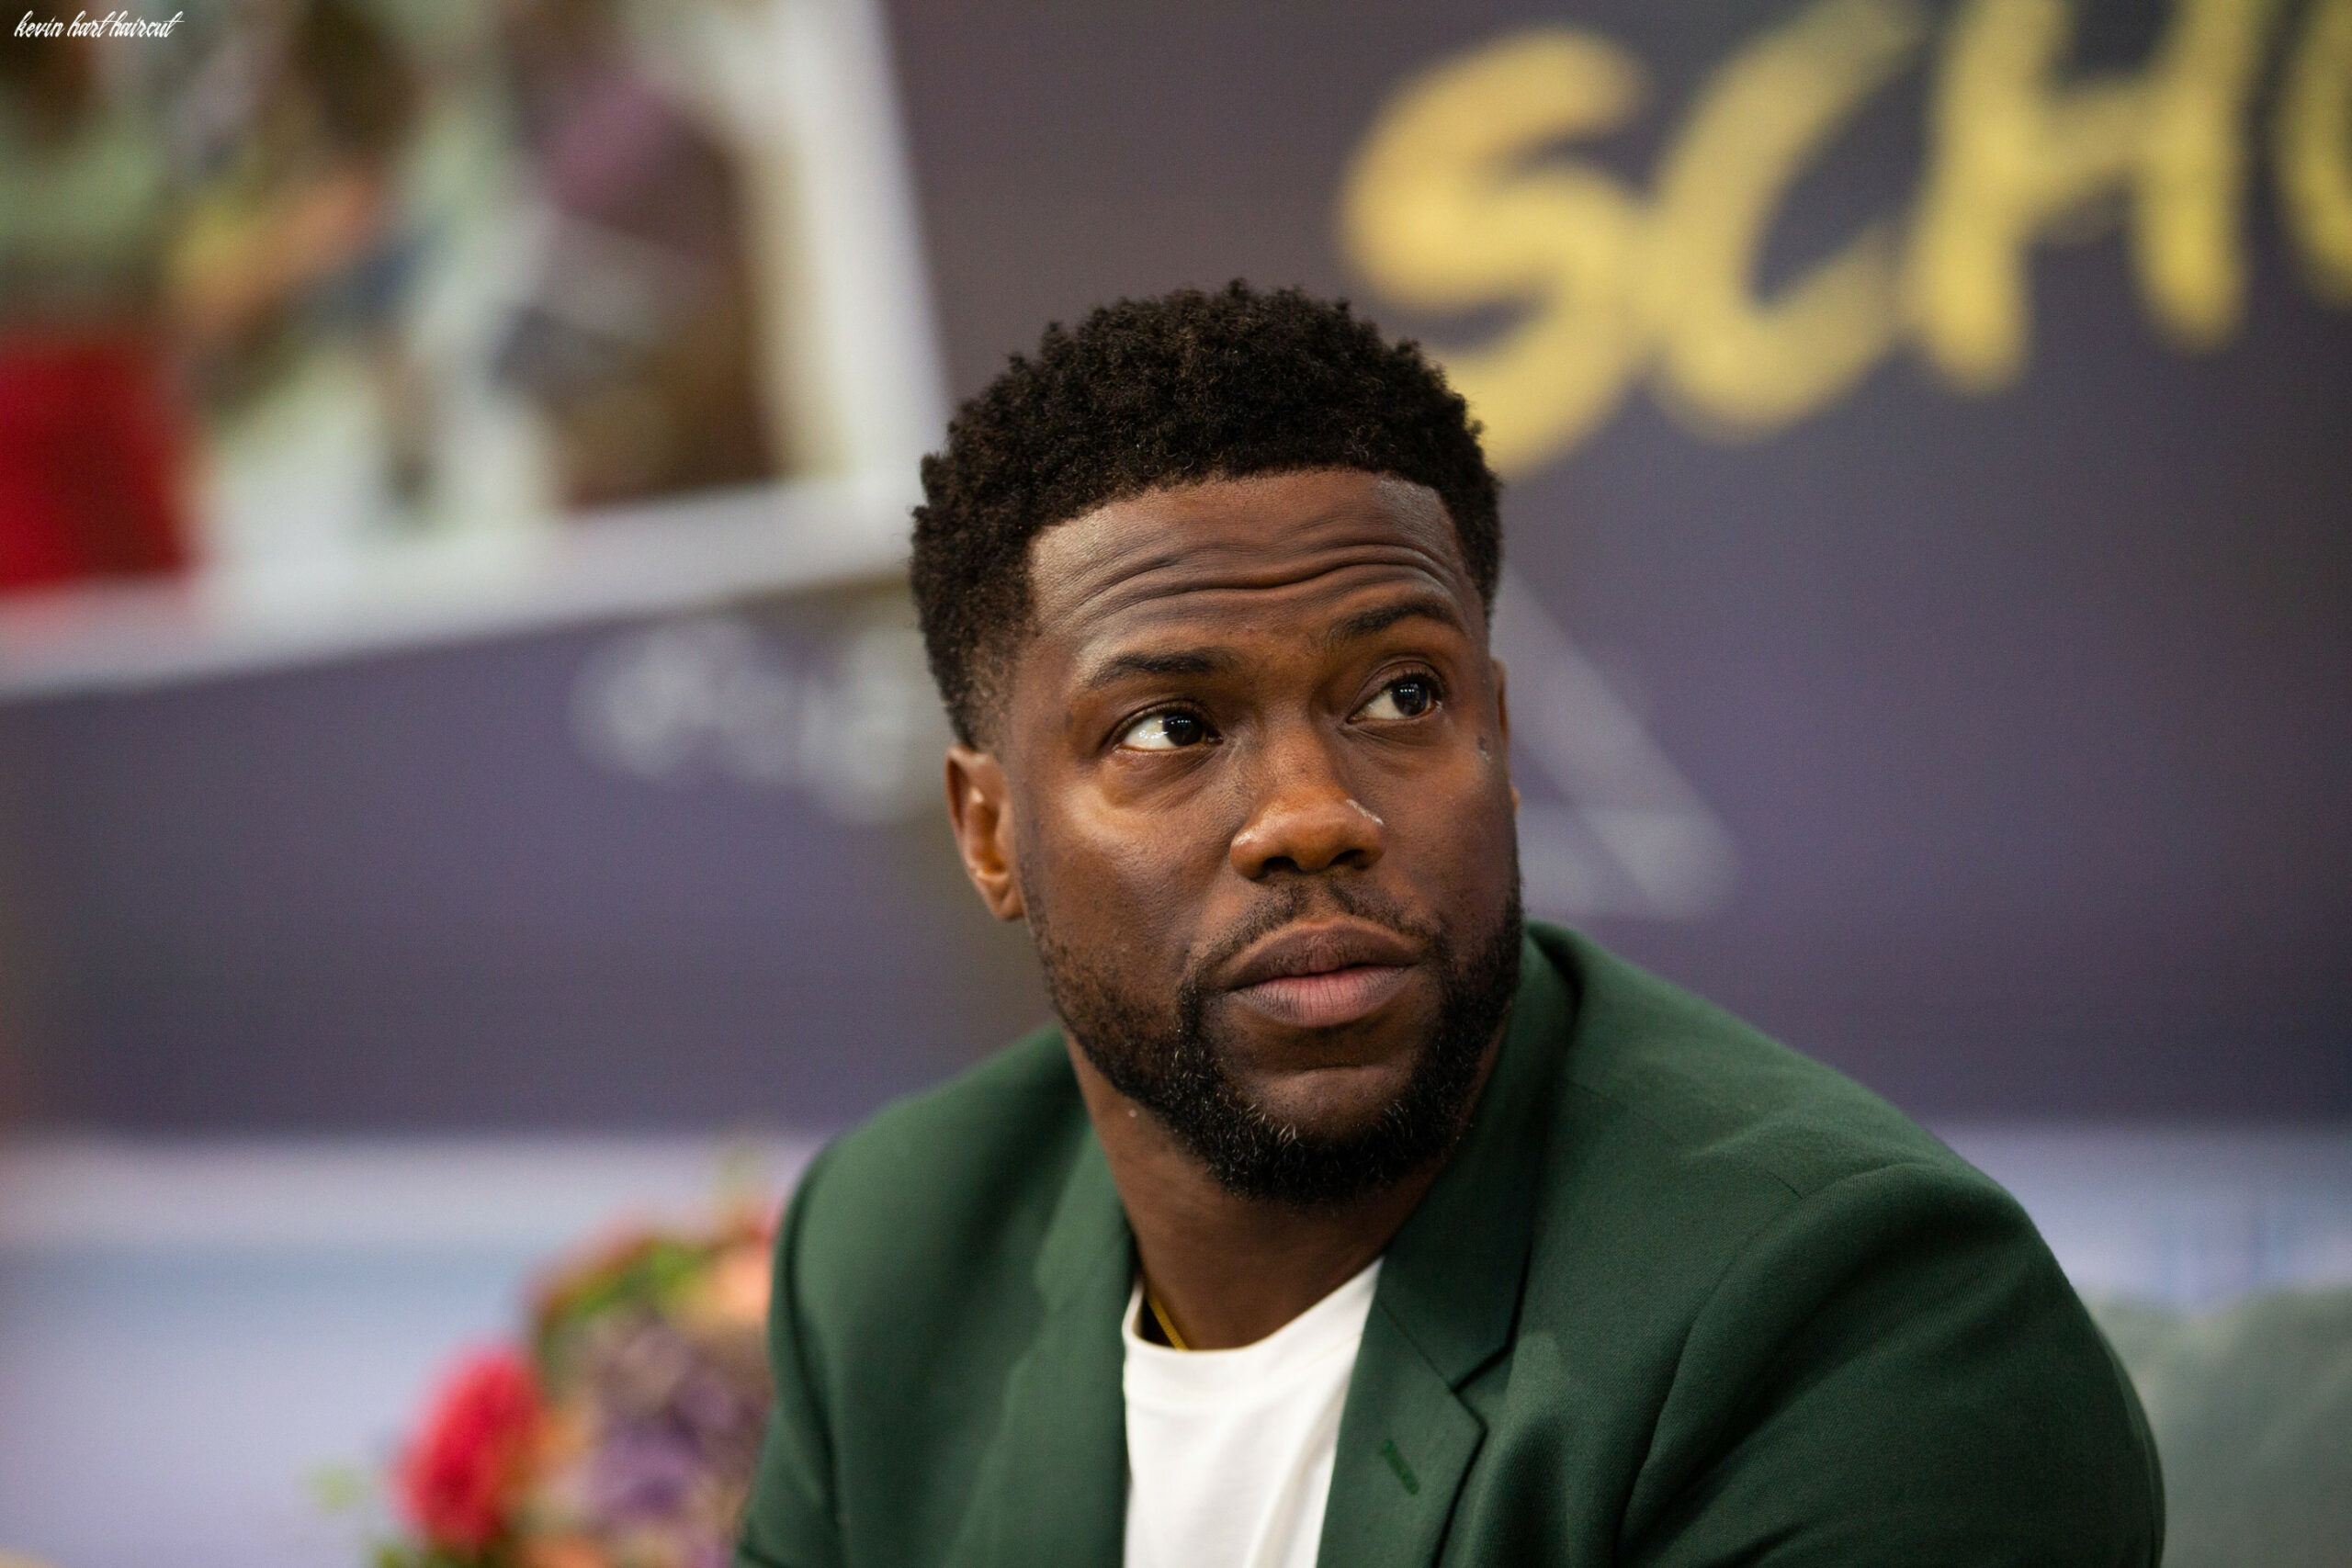 David letterman really wanted kevin hart to host the oscars